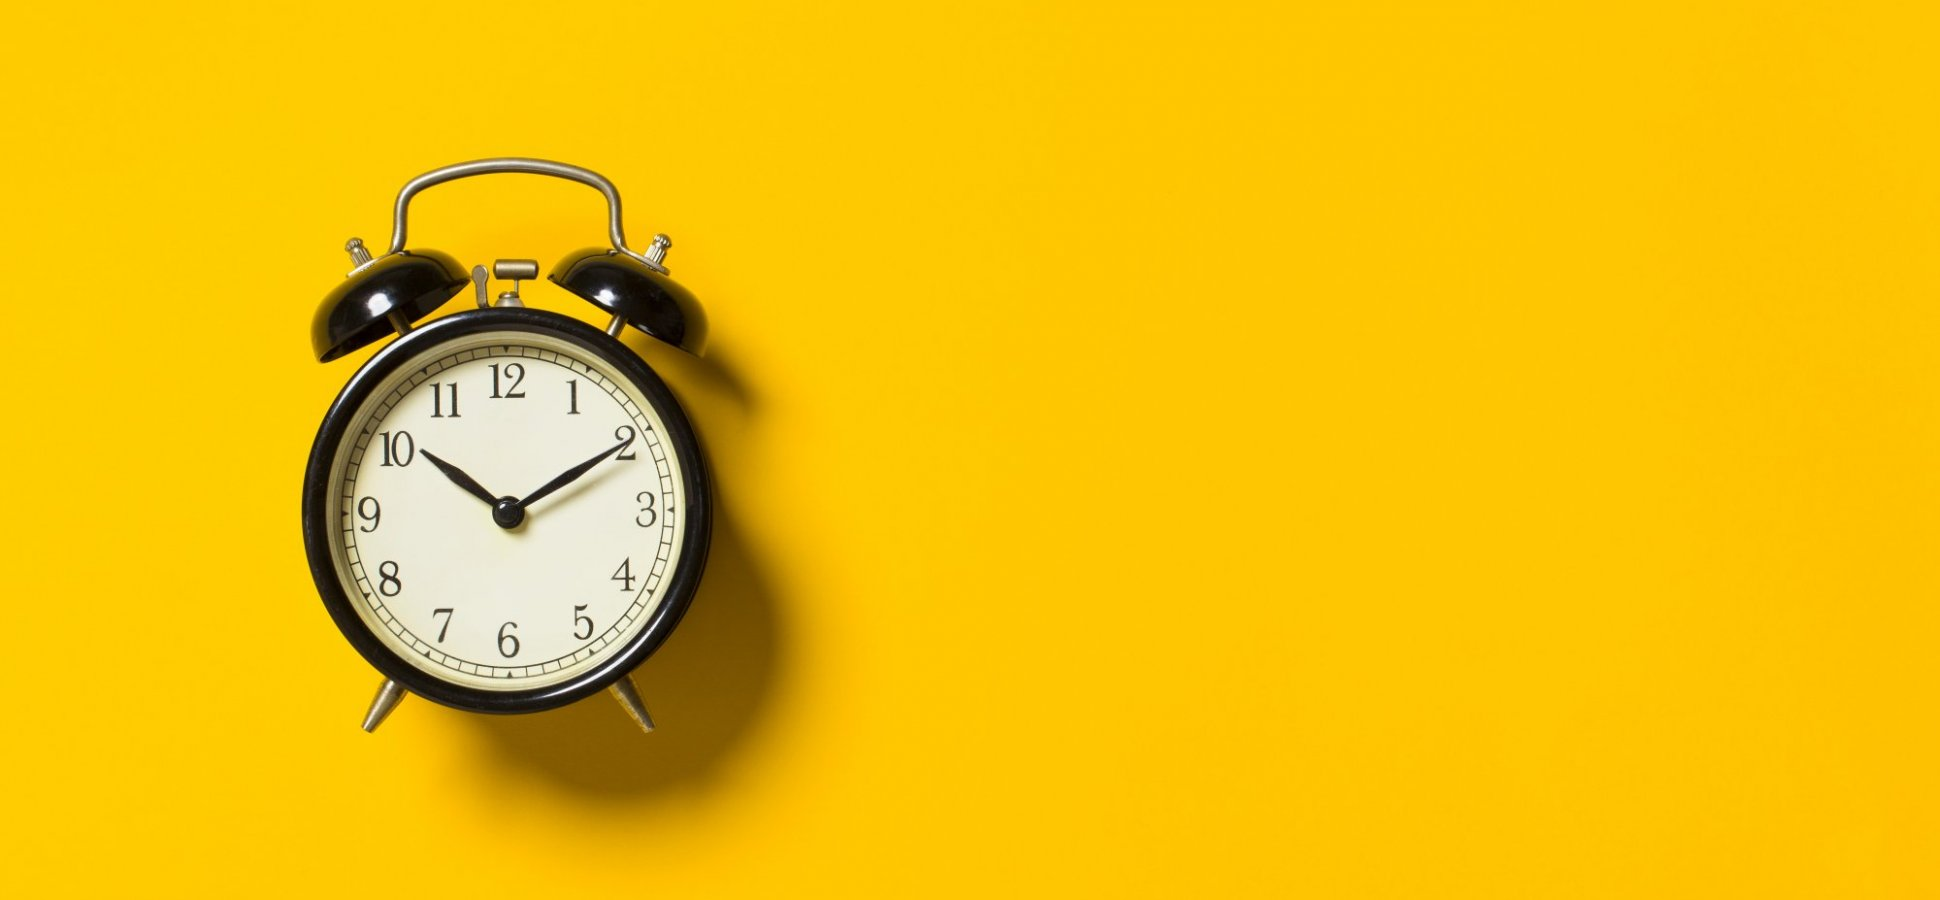 Research Shows There's a Reason Why You Never Have Enough Time (Hint: It's All in Your Head)